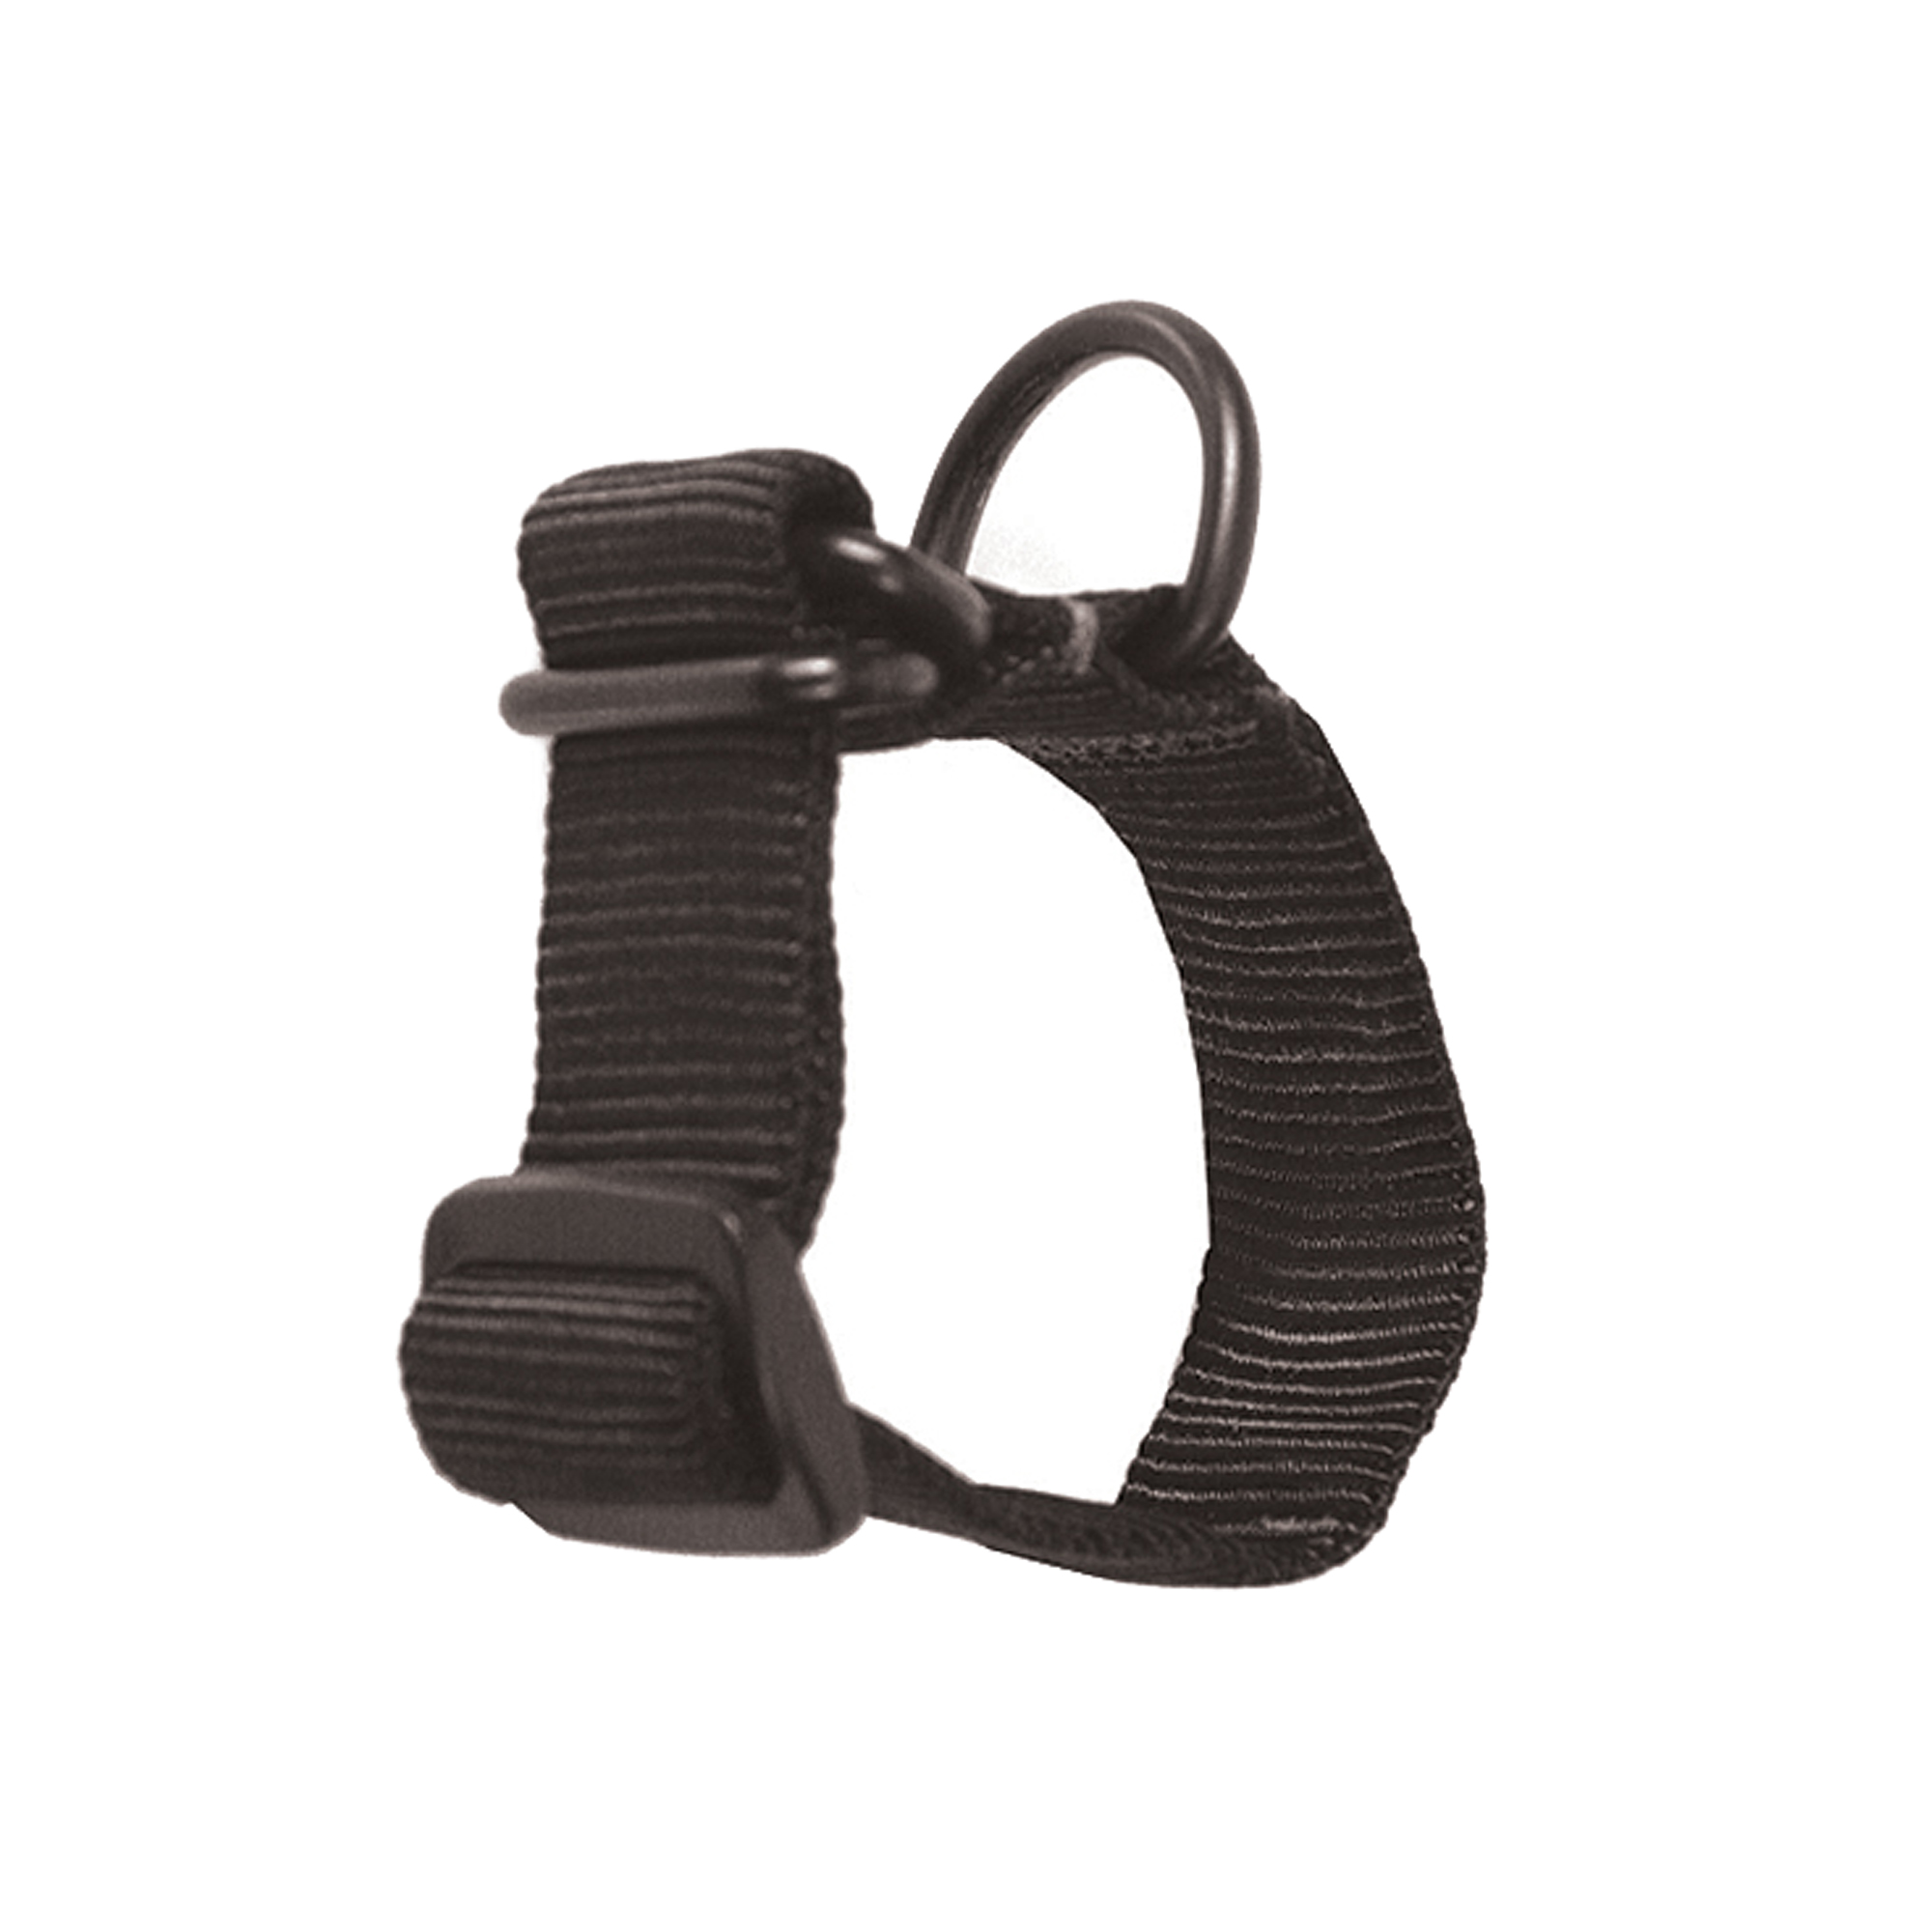 This adapter configures any weapon to accept a single-point sling.